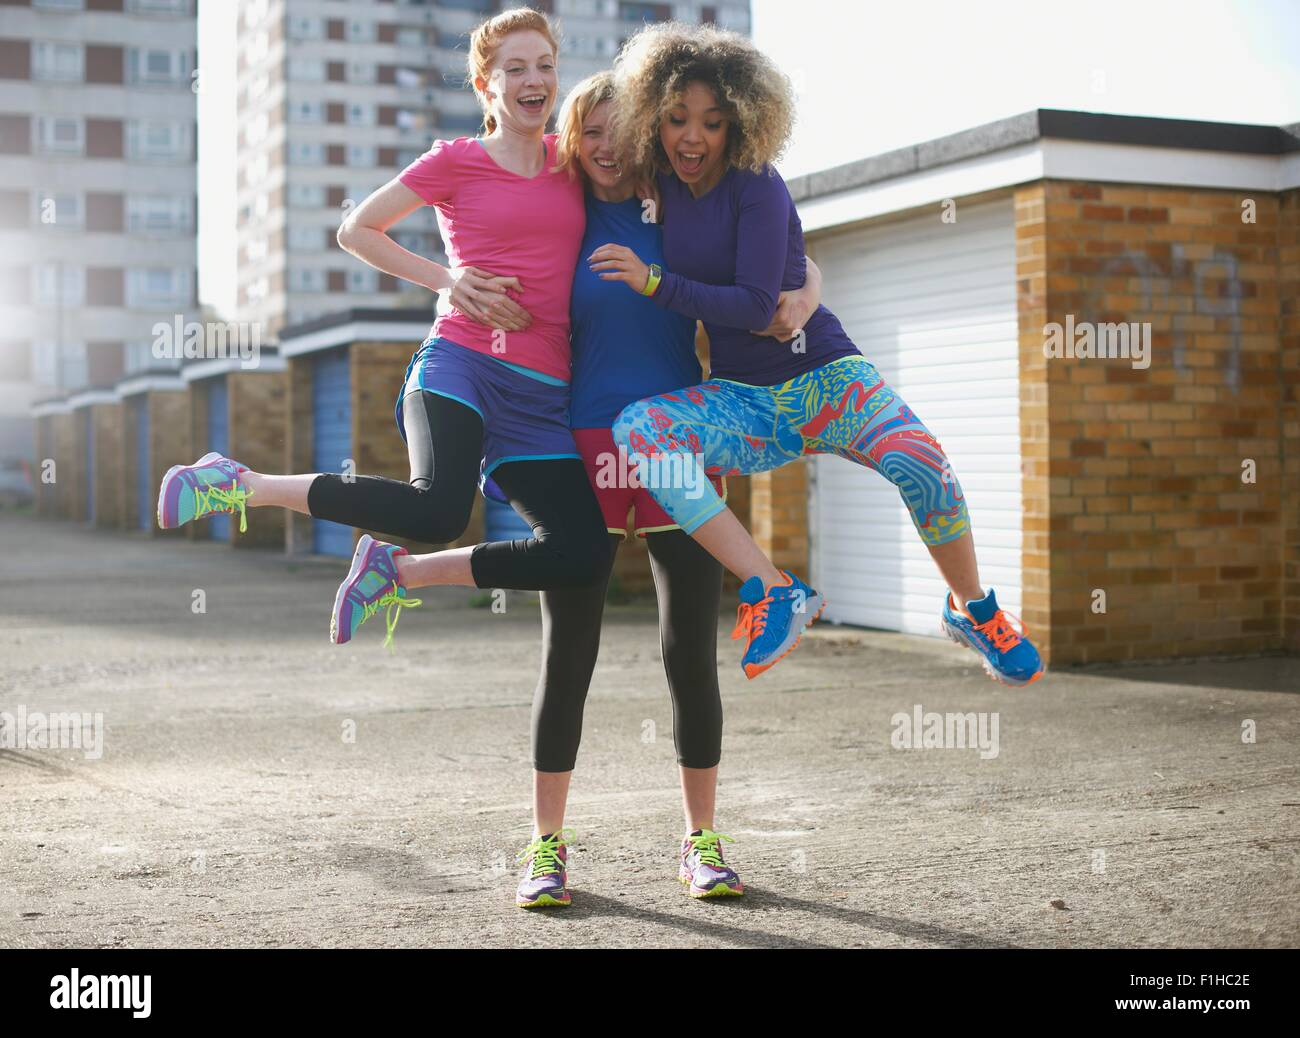 Portrait of three women wearing sports clothing jumping - Stock Image